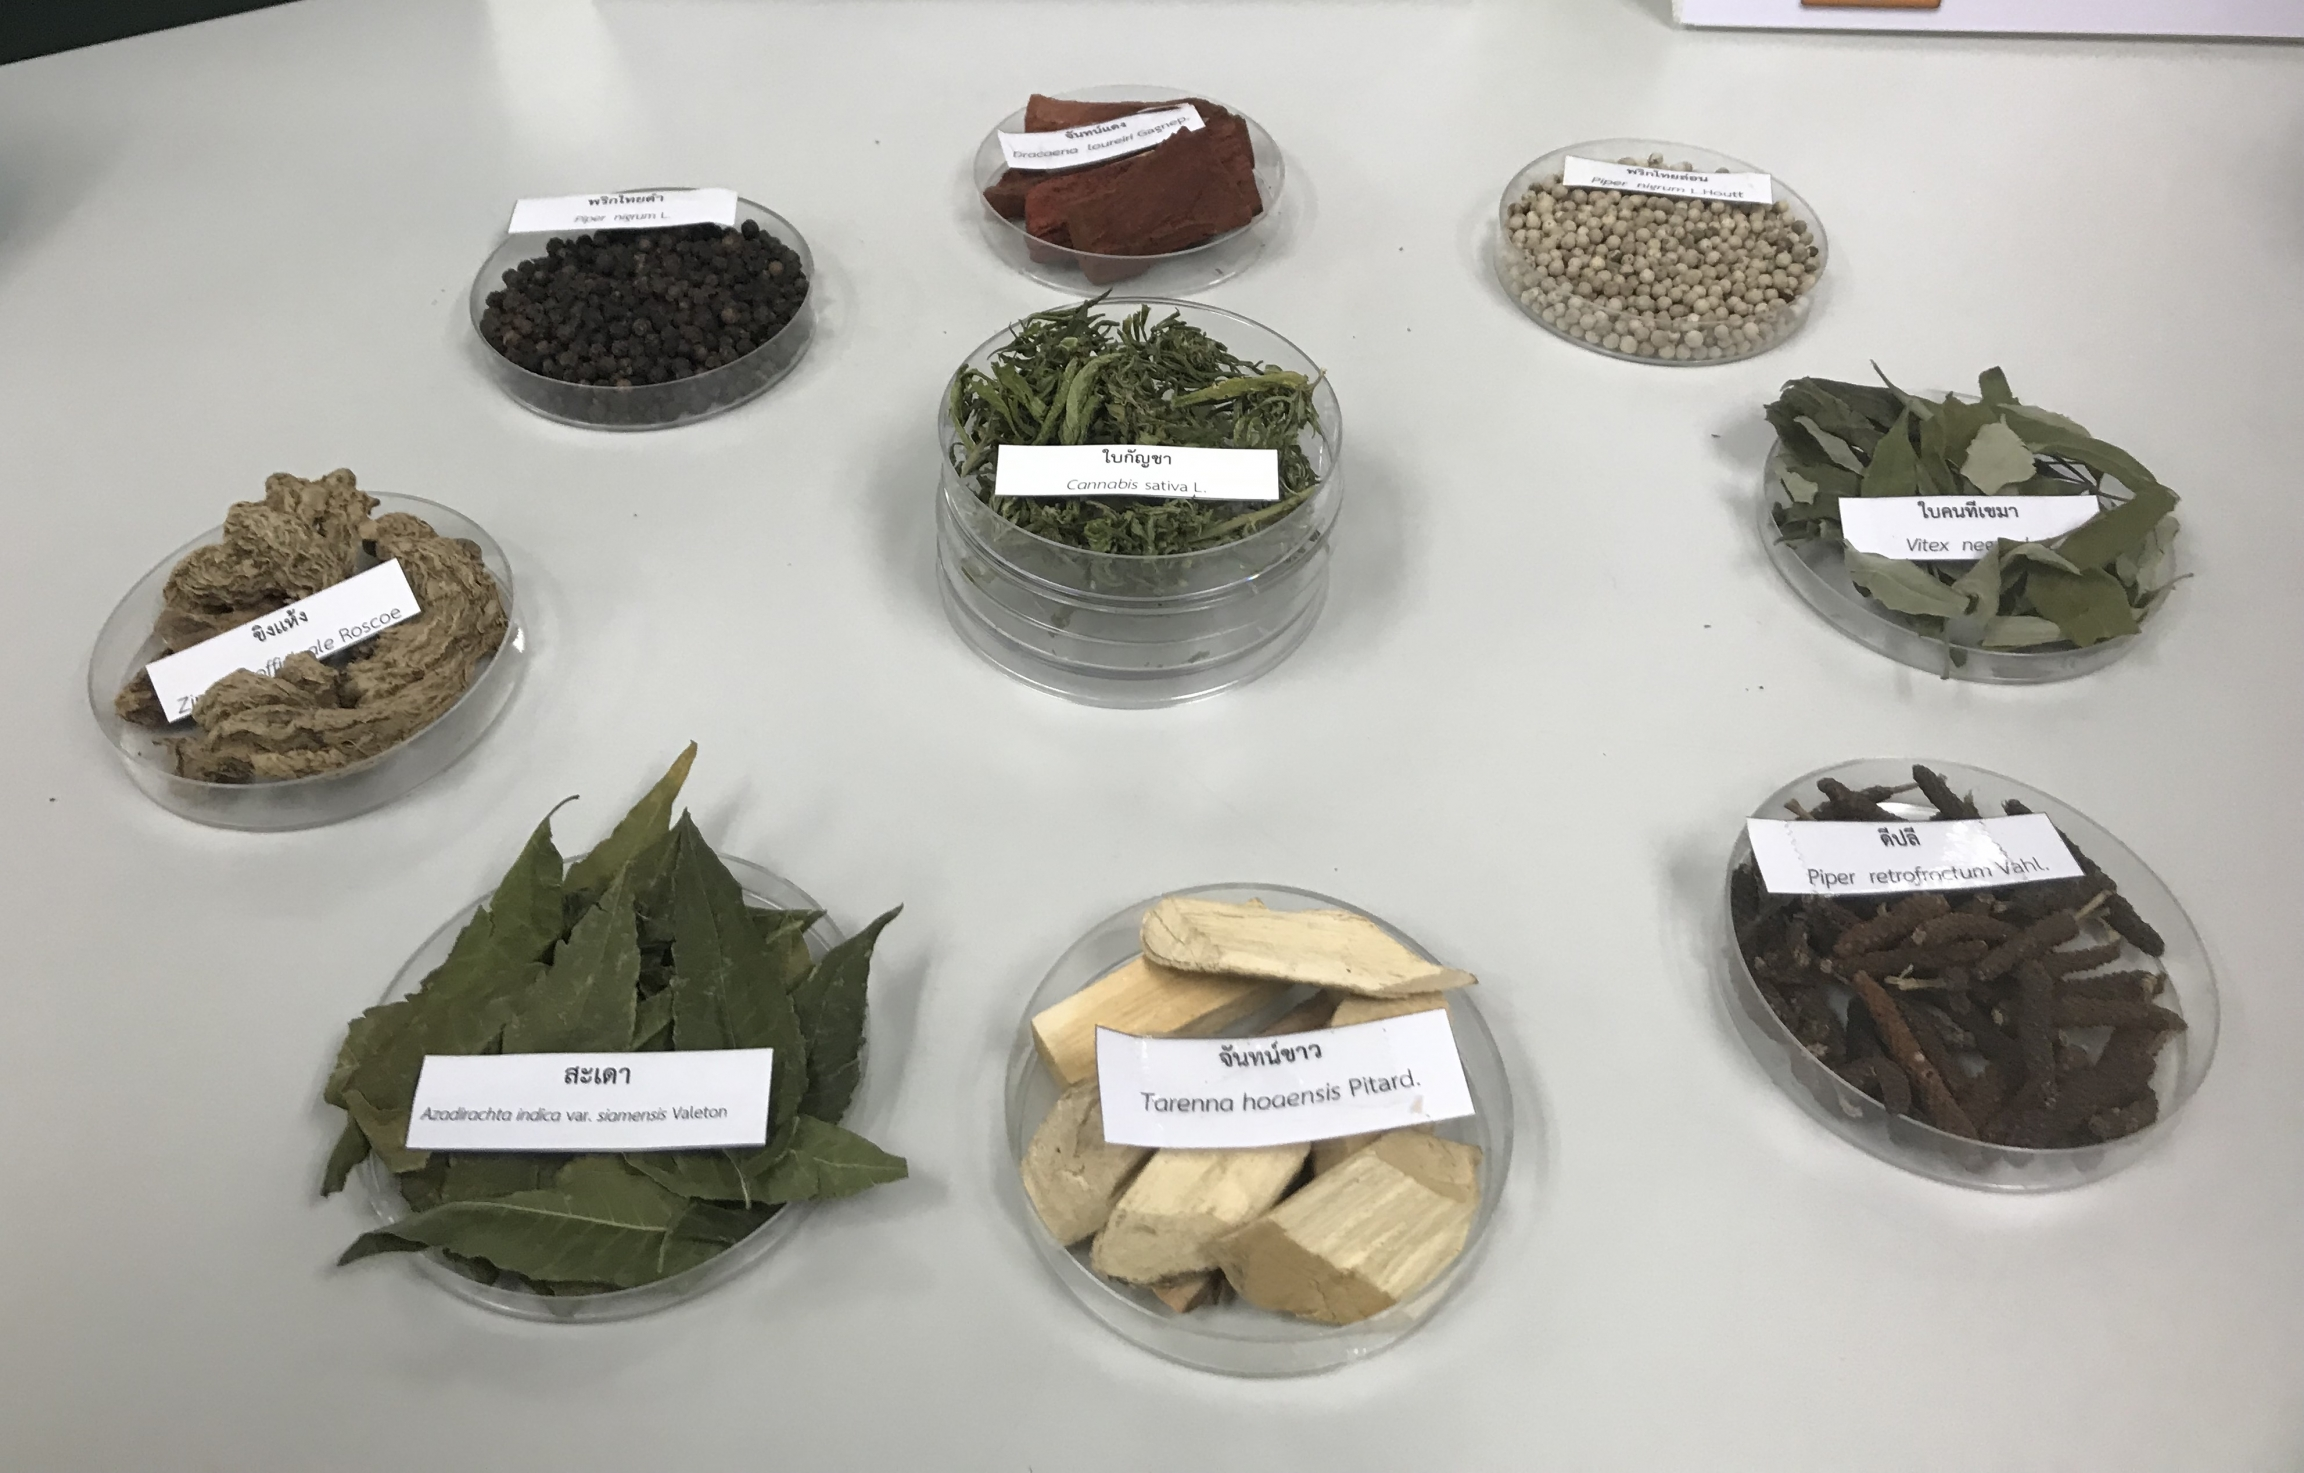 Ingredients used in a prototypical THC-infused powder invented by Thai scientists.